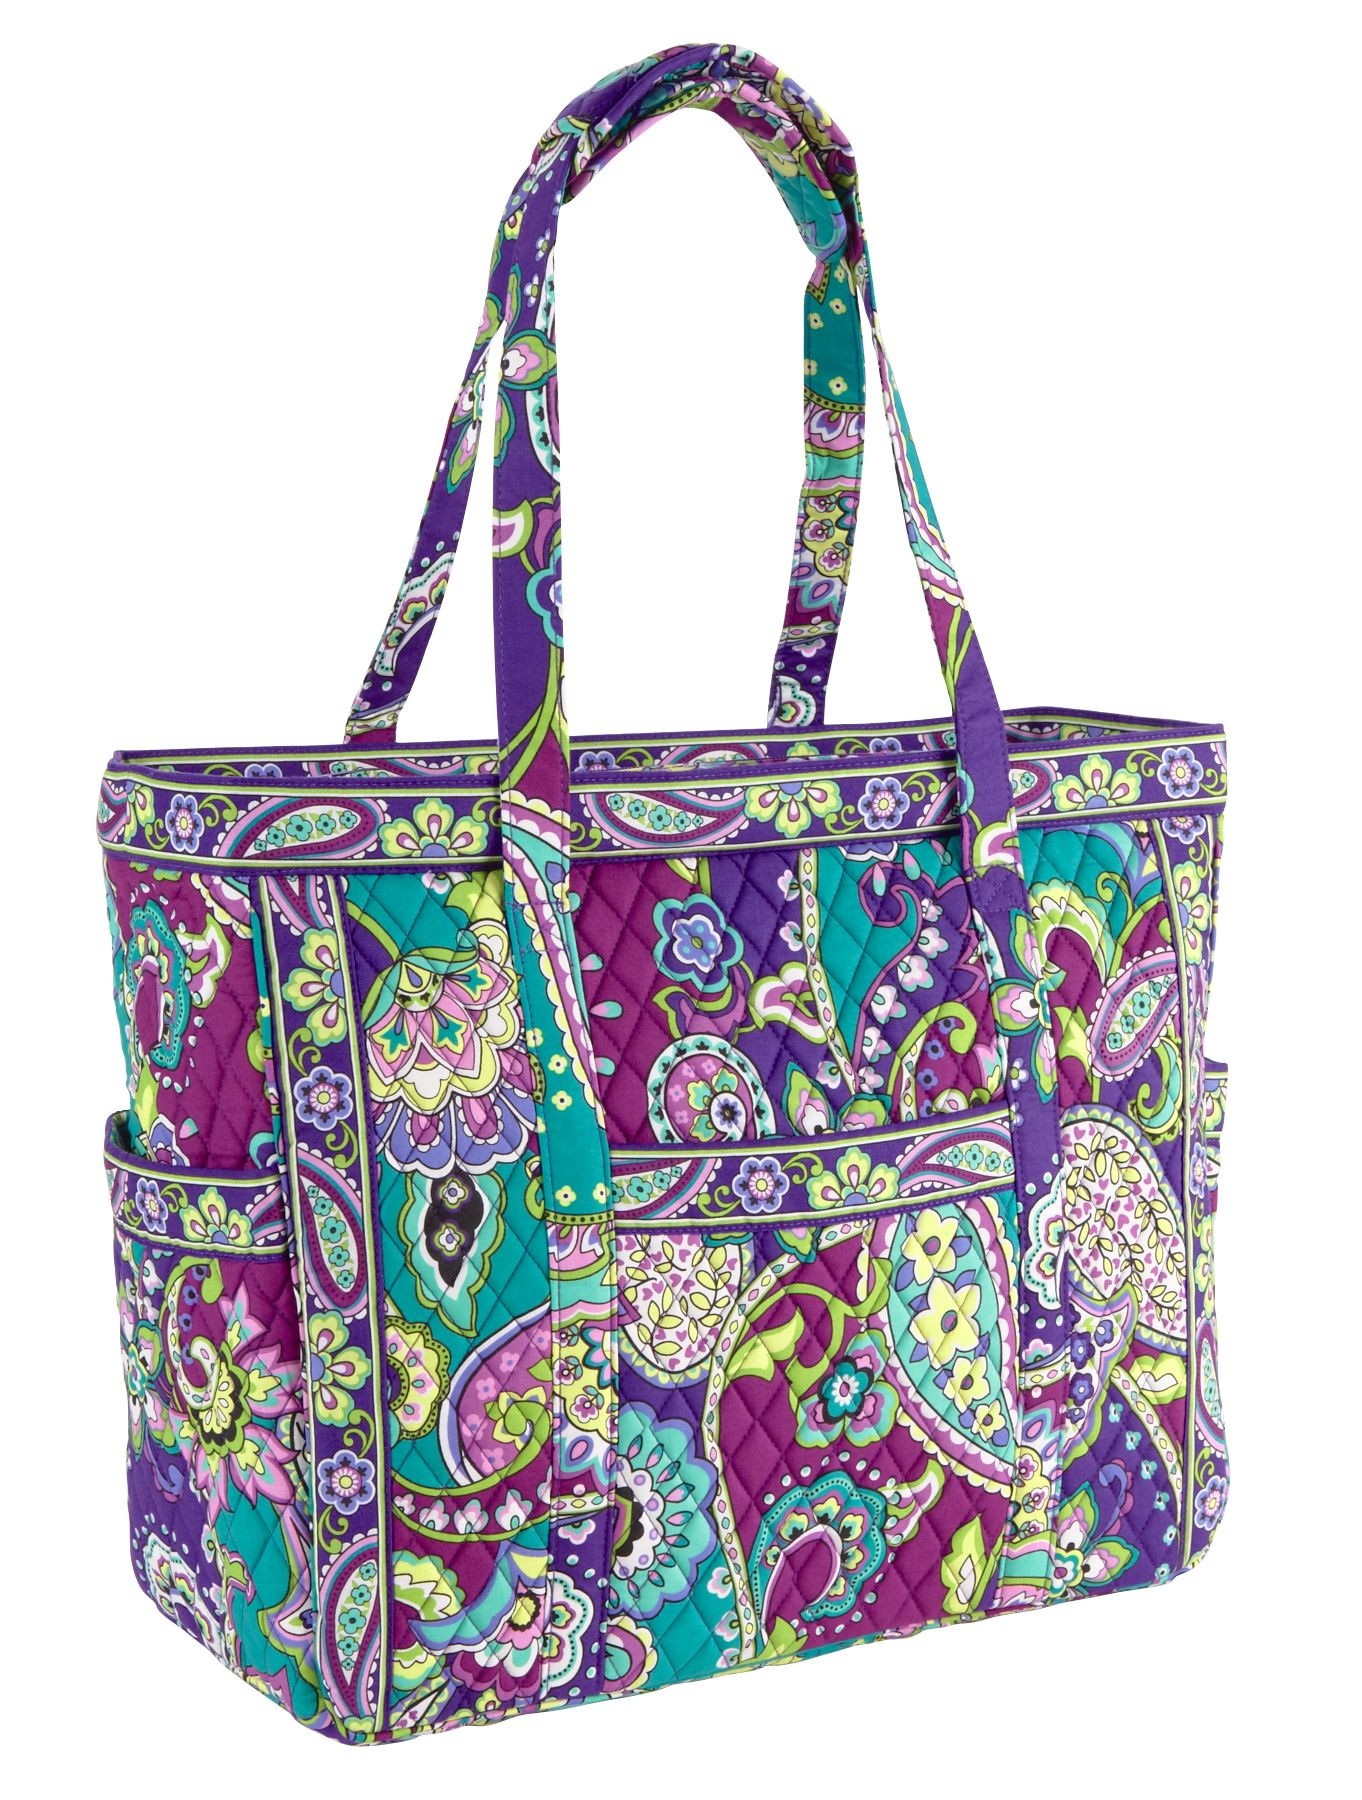 vera bradley get carried away tote bag travel bag martlocal. Black Bedroom Furniture Sets. Home Design Ideas